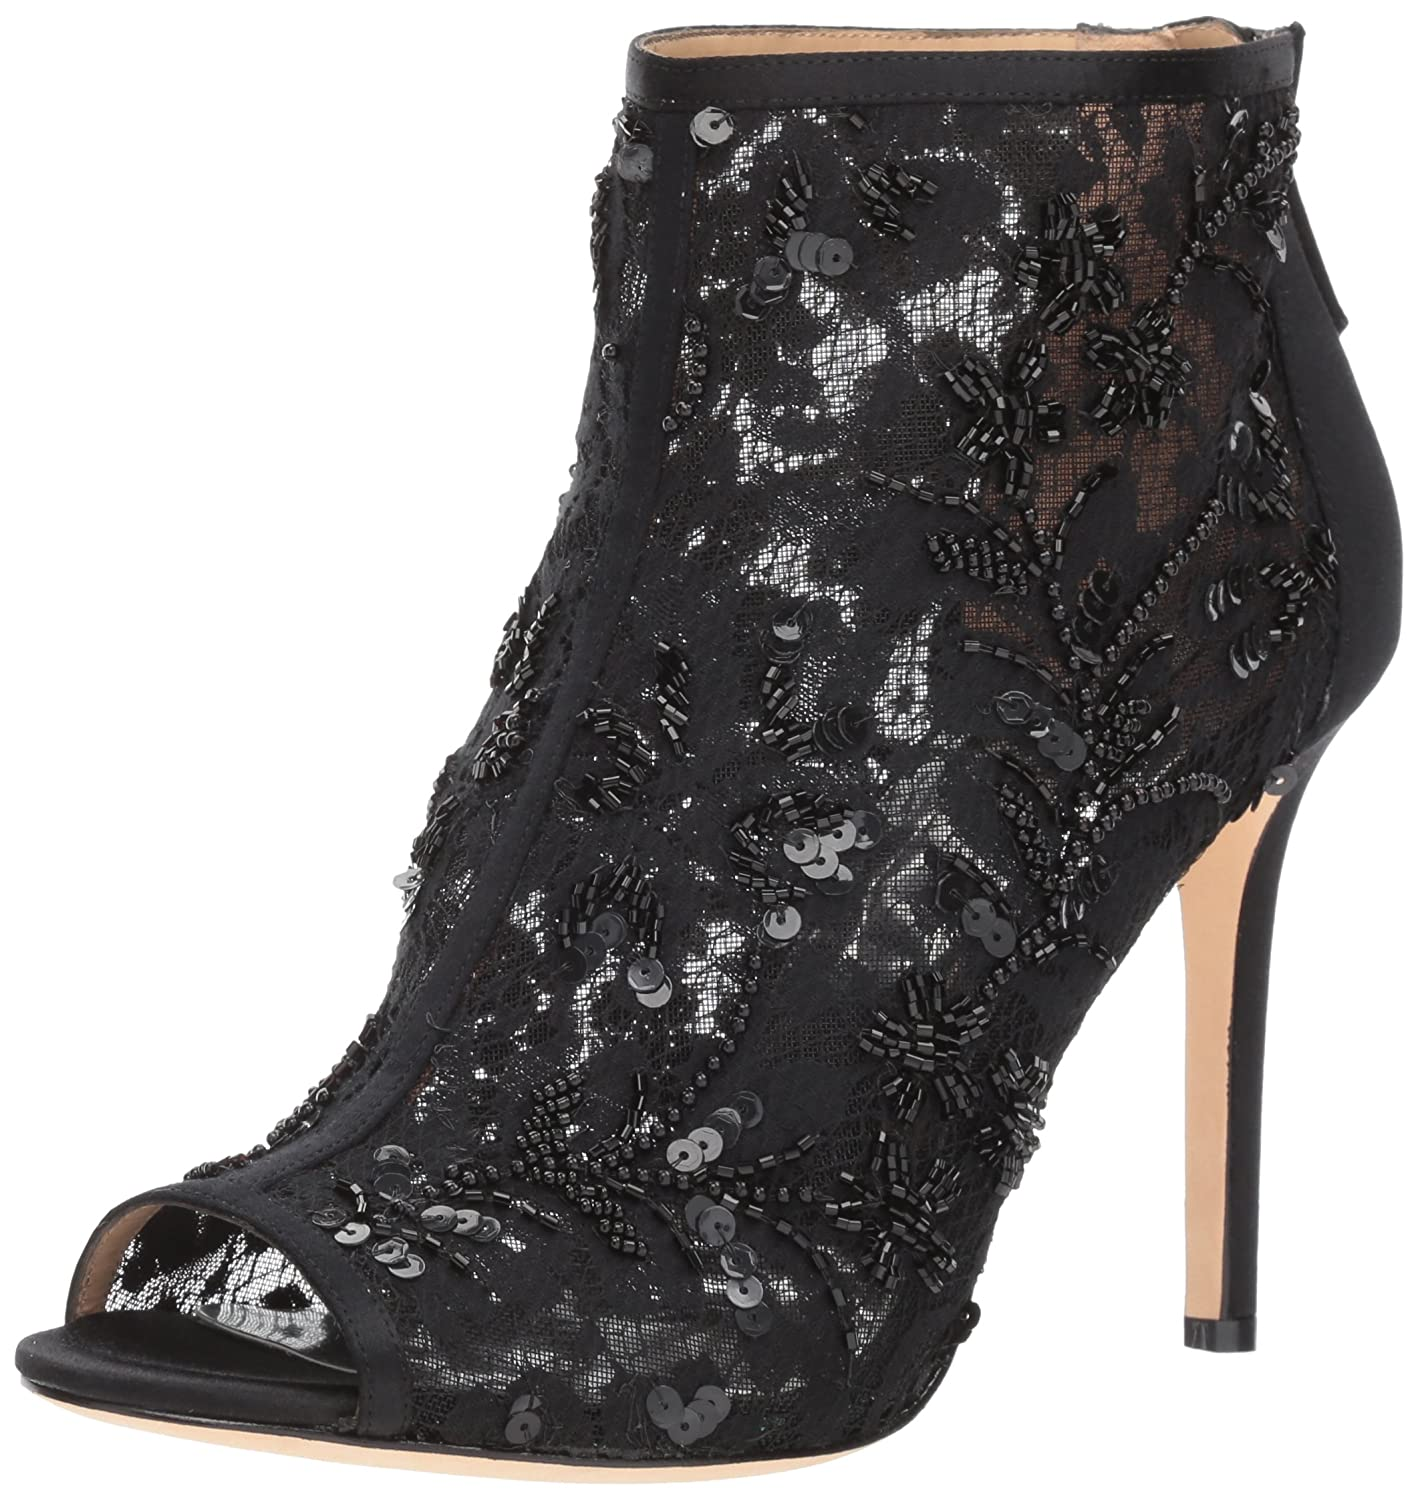 Badgley Mischka Women's Moyra Ankle Boot B073C3S23Y 5.5 B(M) US|Black